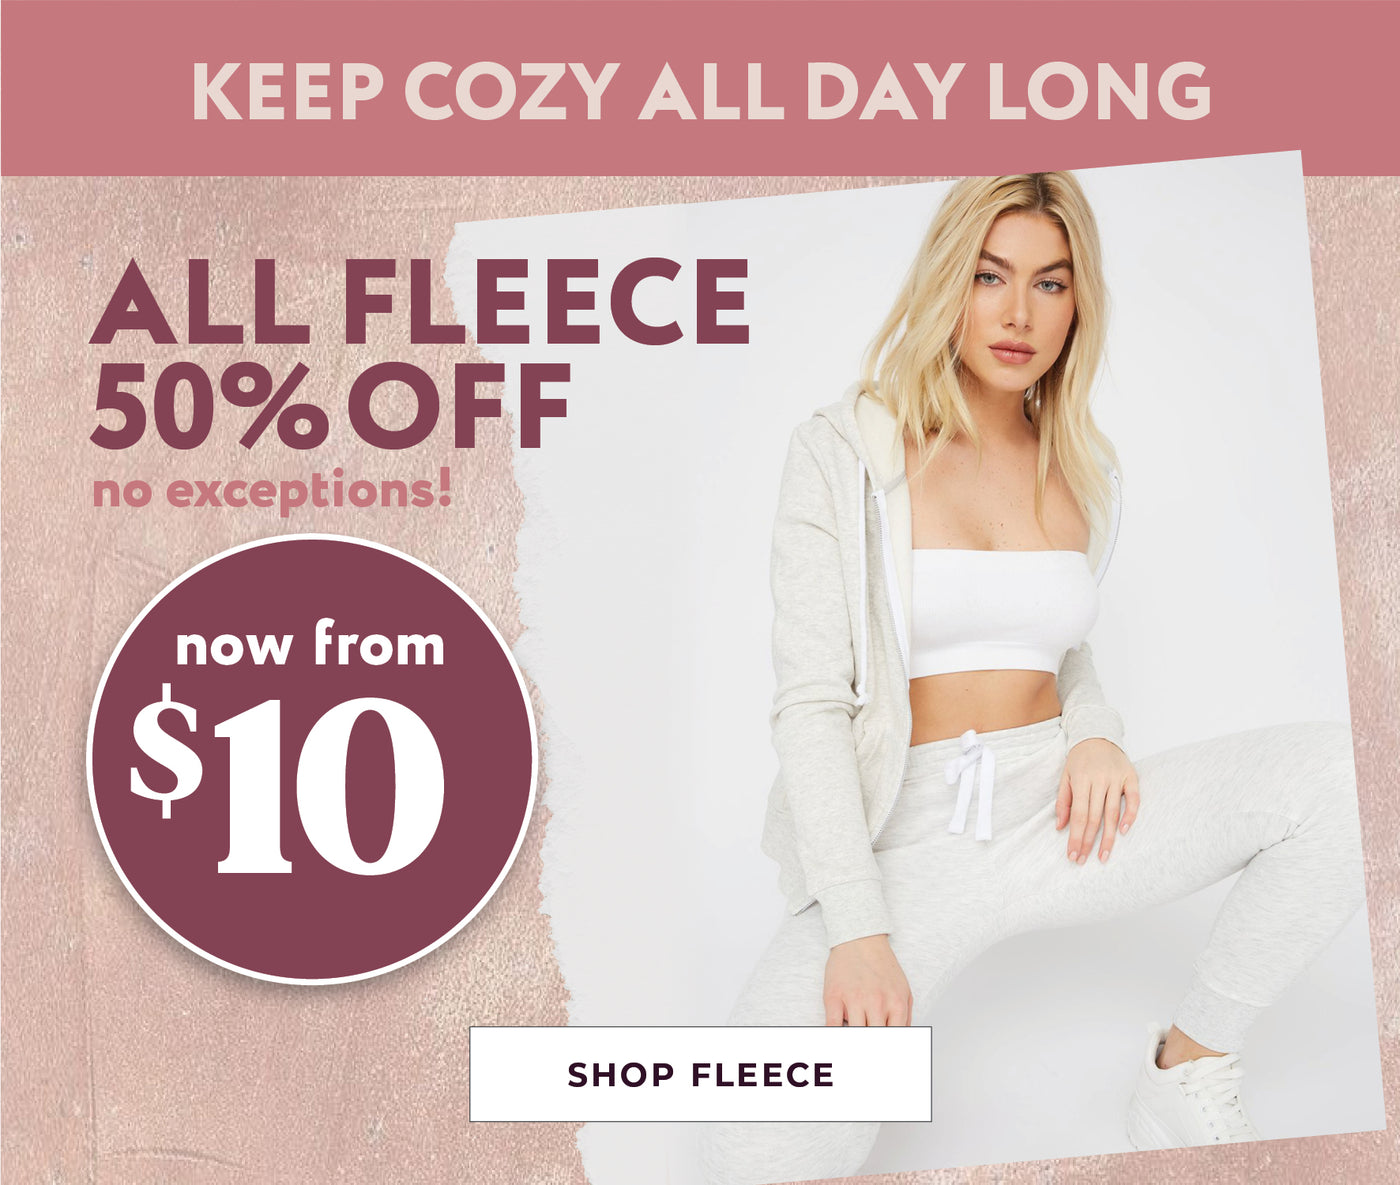 All Fleece - 50% Off, now from $10